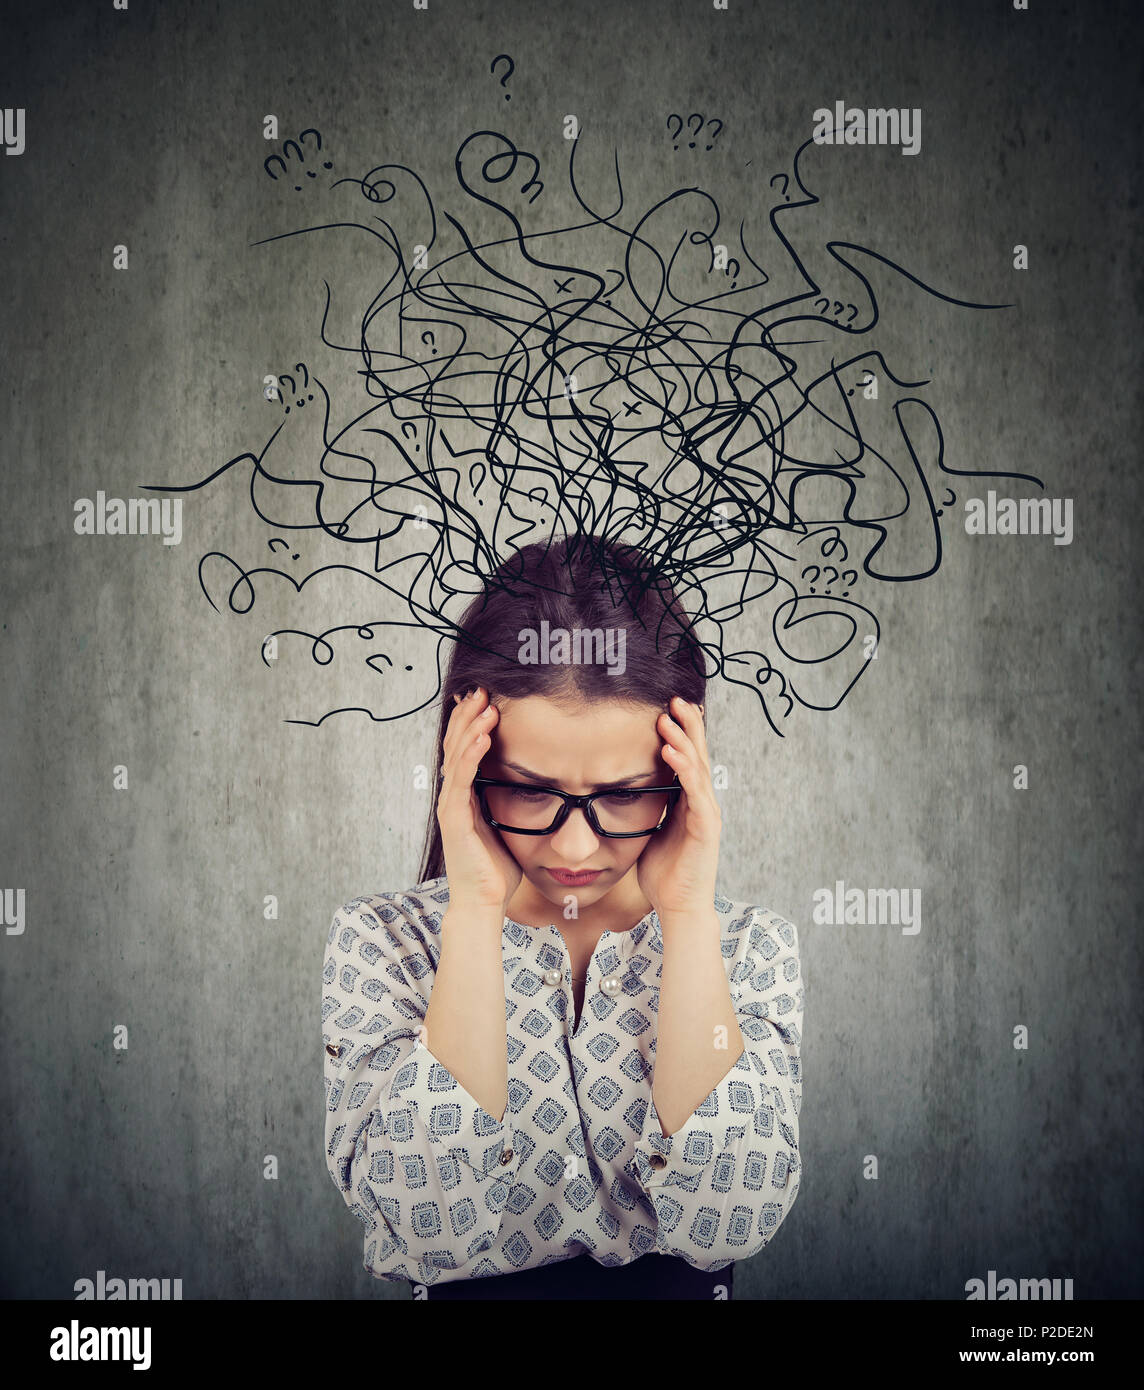 Girl in glasses having problems with mental health and looking deep in chaos on gray background - Stock Image